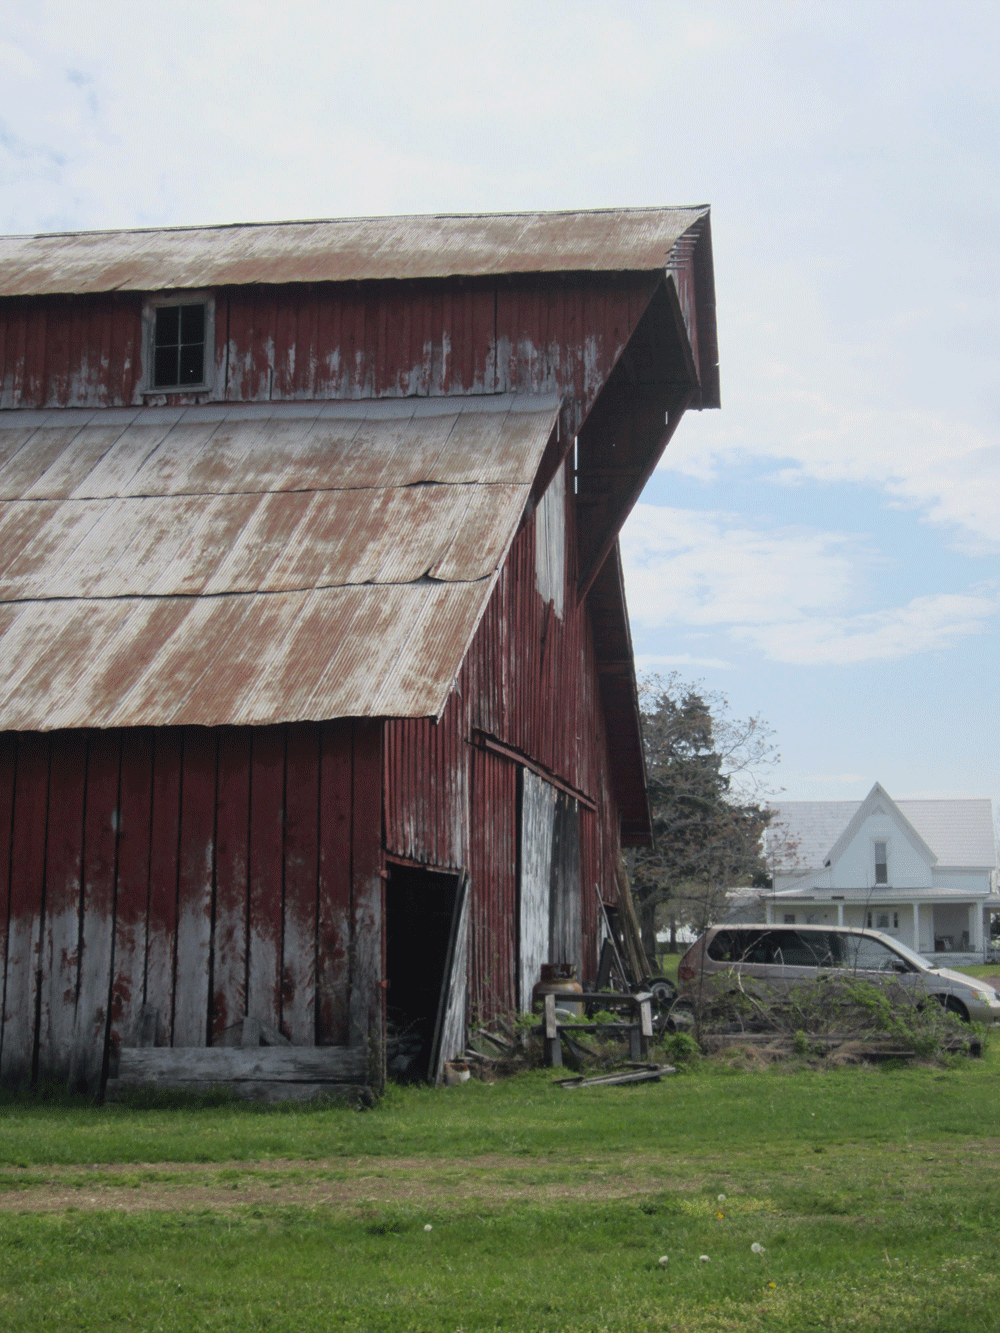 Original image of red gabled barn with rusting tin roof